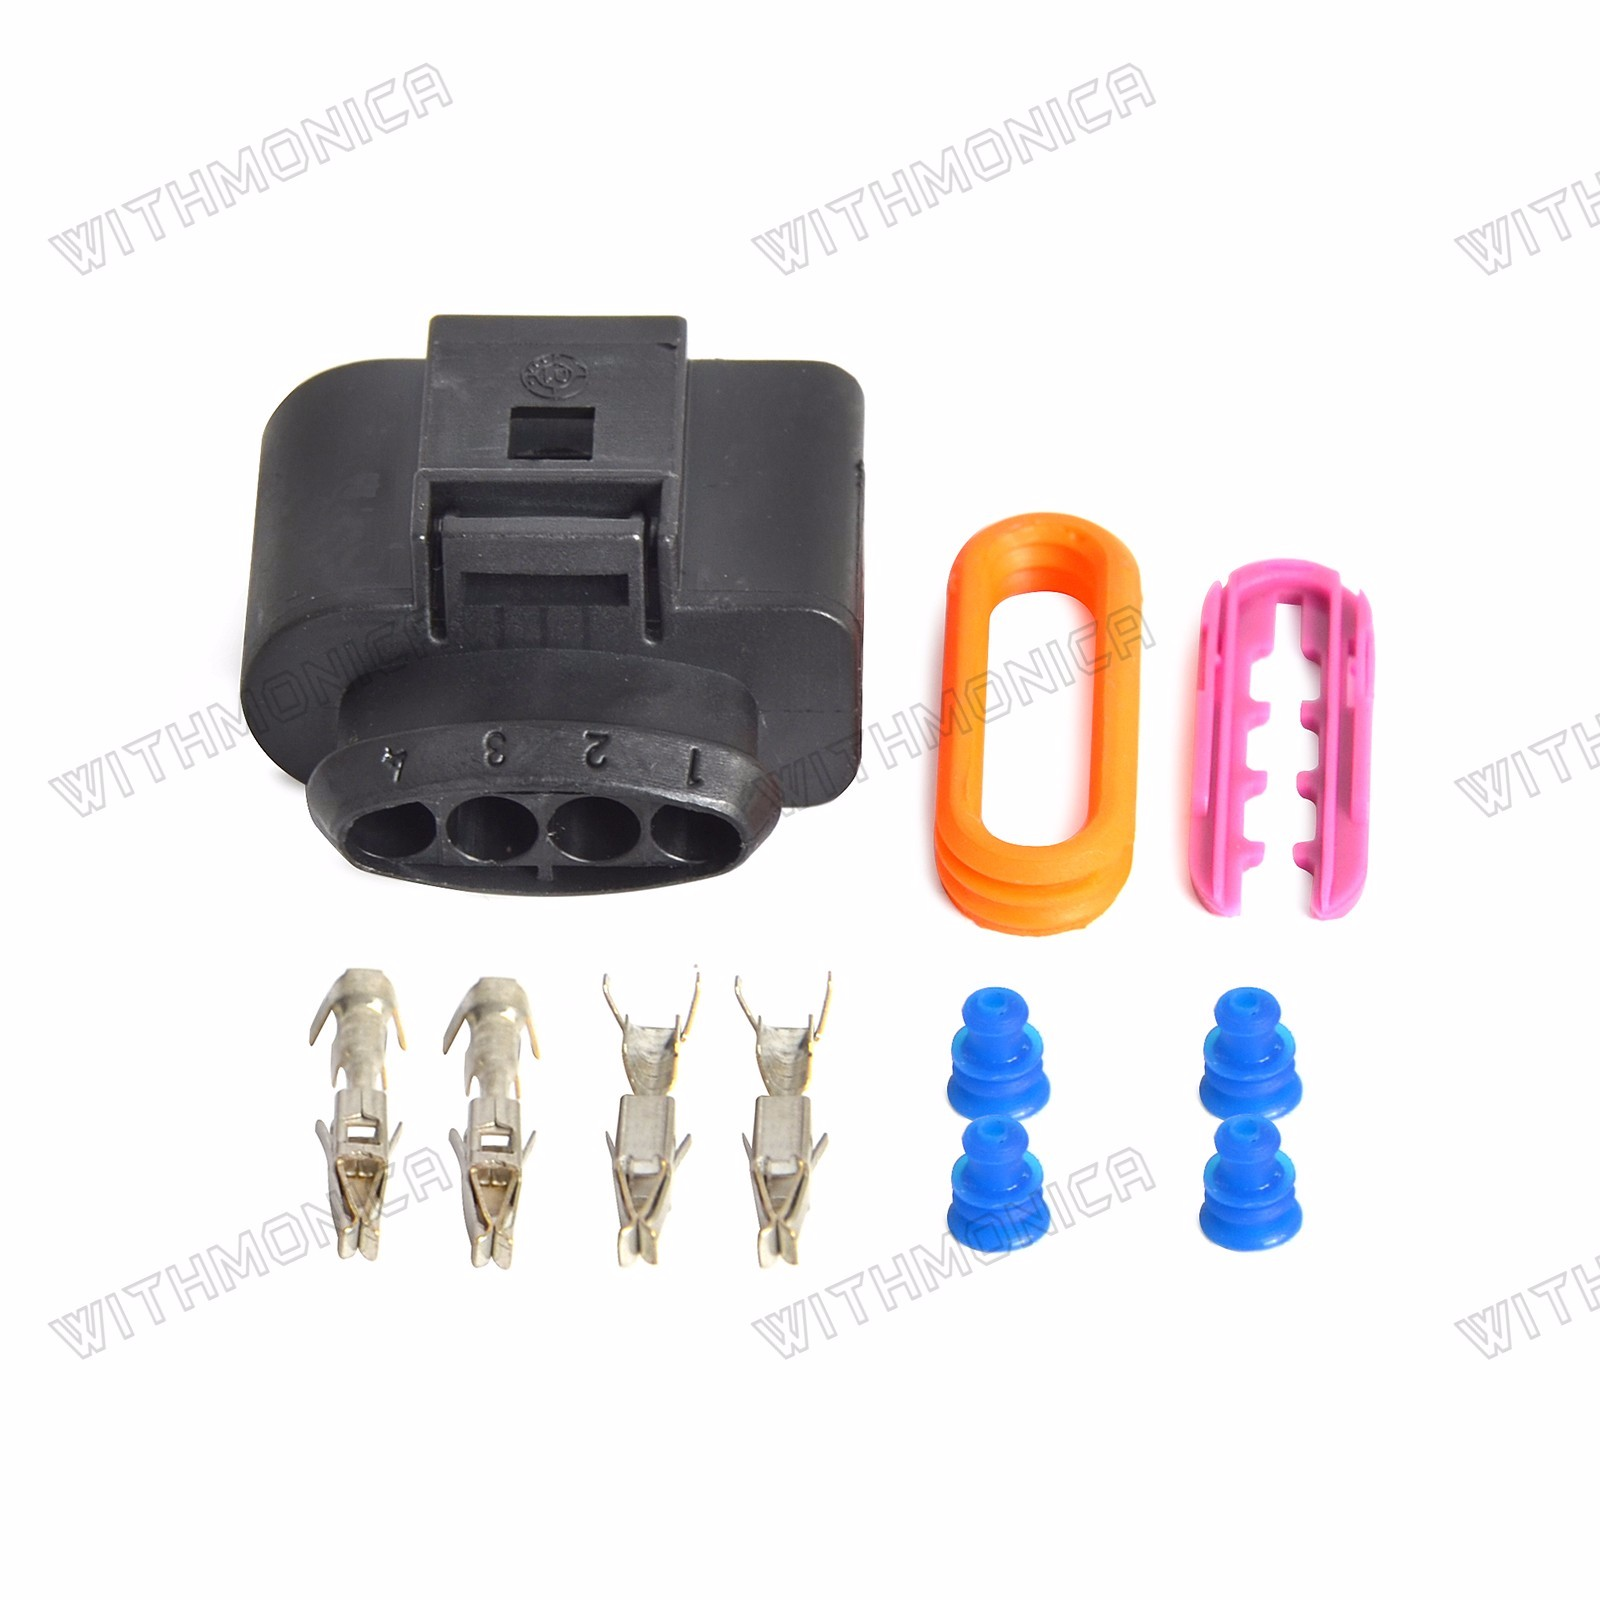 ignition coil wiring harness connector repair kit fits for audi a4 rh ebay com Ford Wiring Harness Connectors vw wiring harness connectors